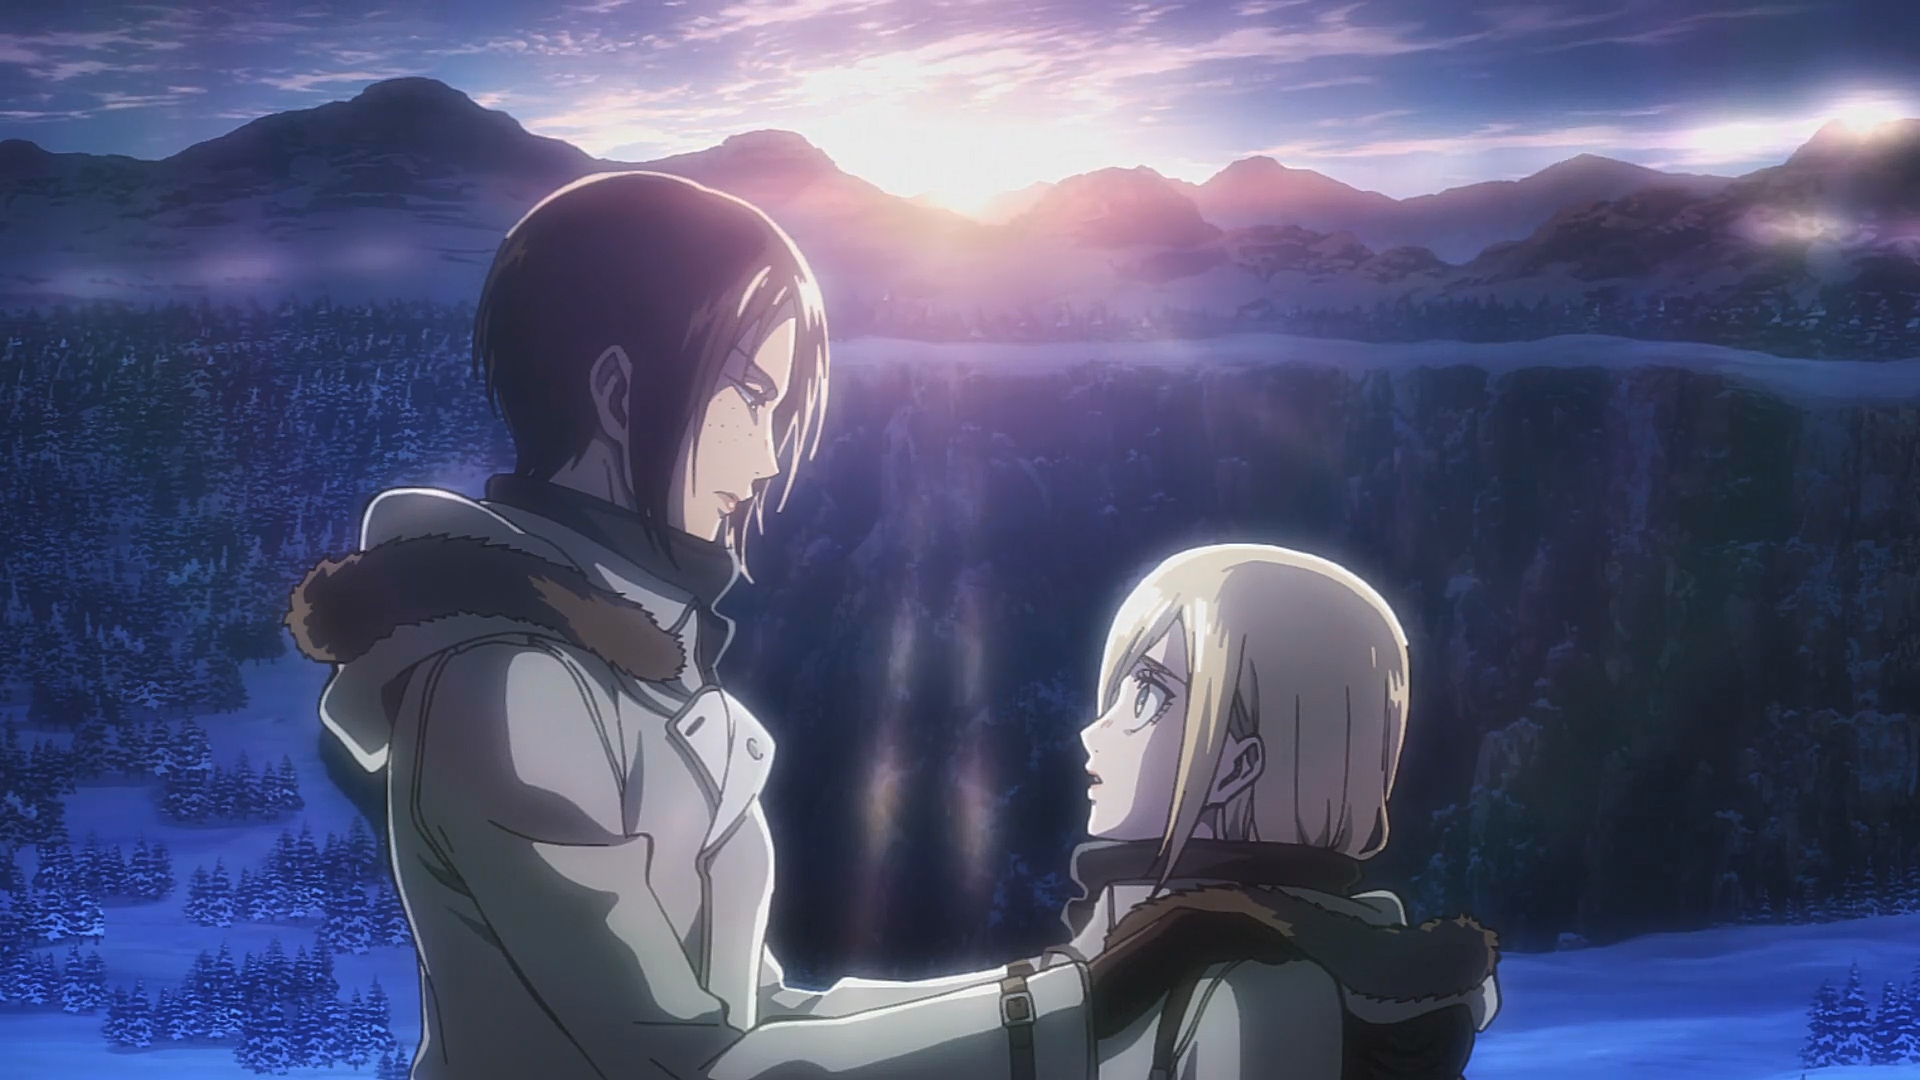 Attack On Titan Wiki Attack On Titan Ymir And Historia 1920x1080 Download Hd Wallpaper Wallpapertip